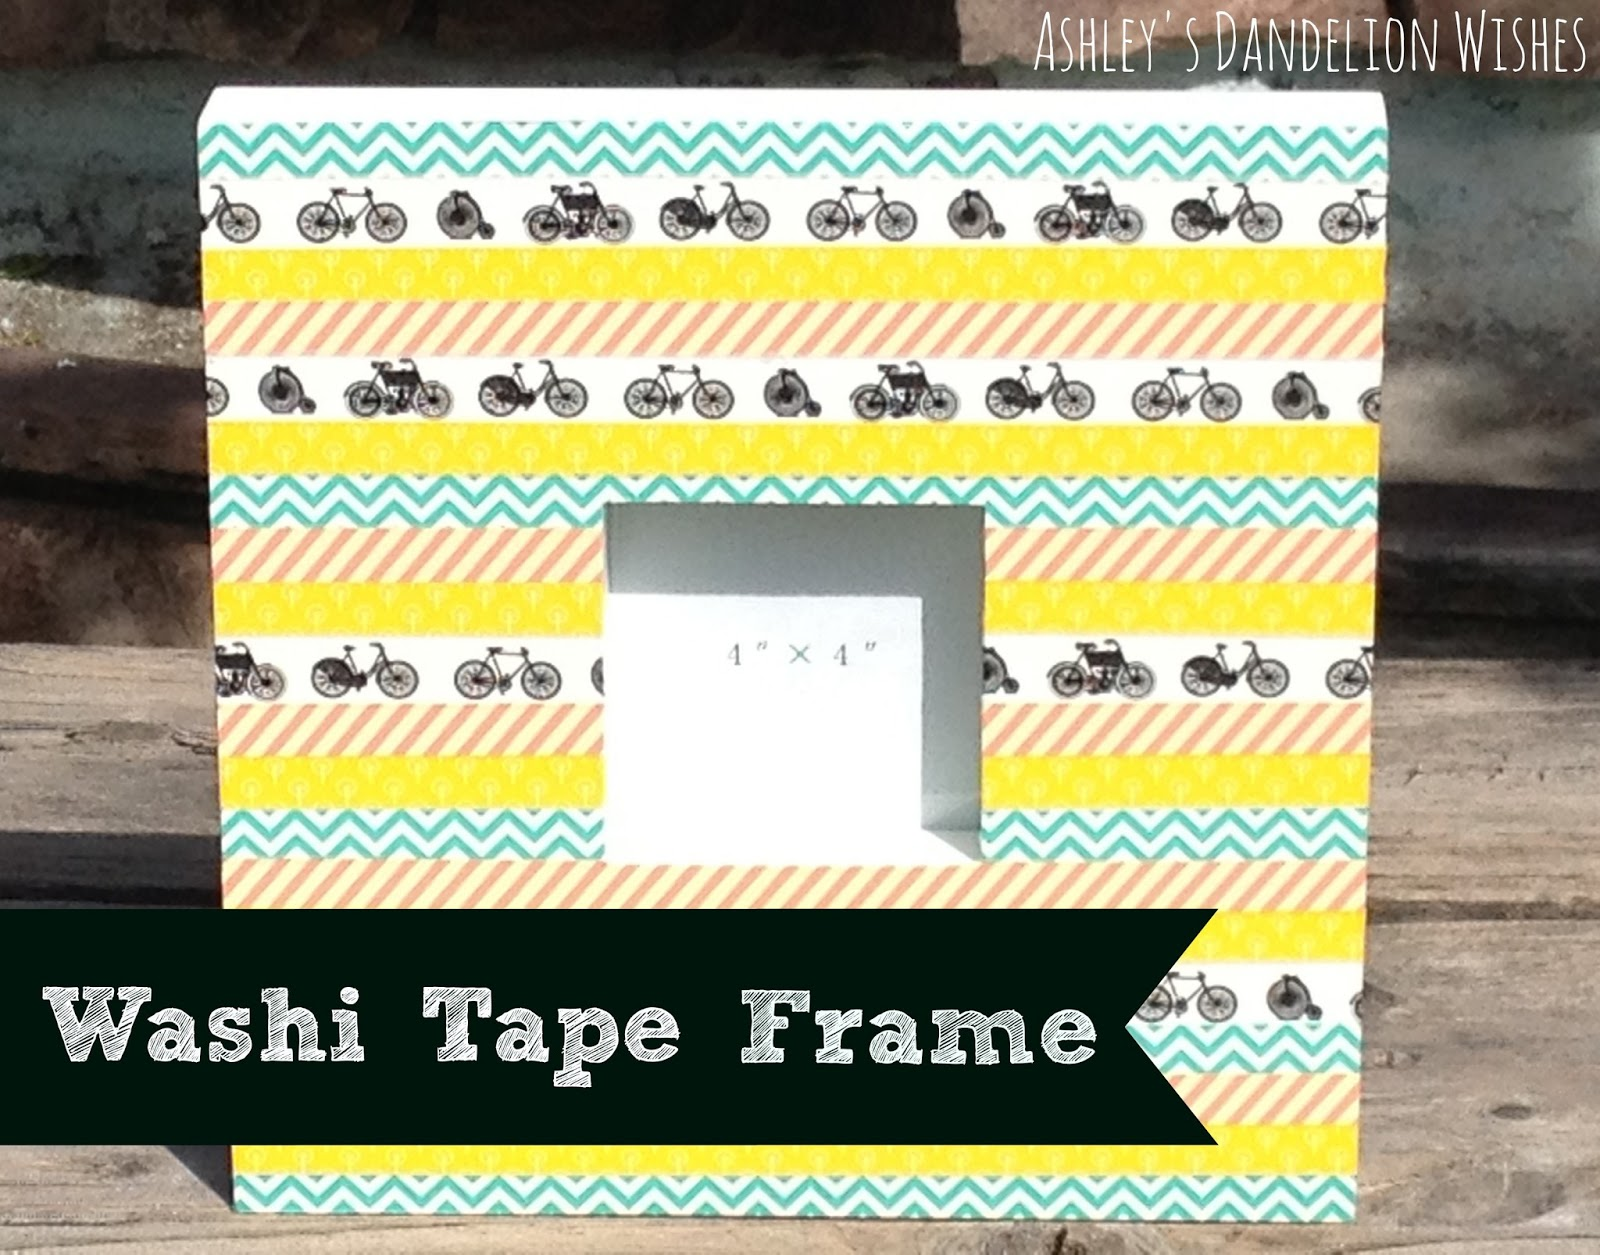 ashley 39 s dandelion wishes diy washi tape frame tutorial. Black Bedroom Furniture Sets. Home Design Ideas